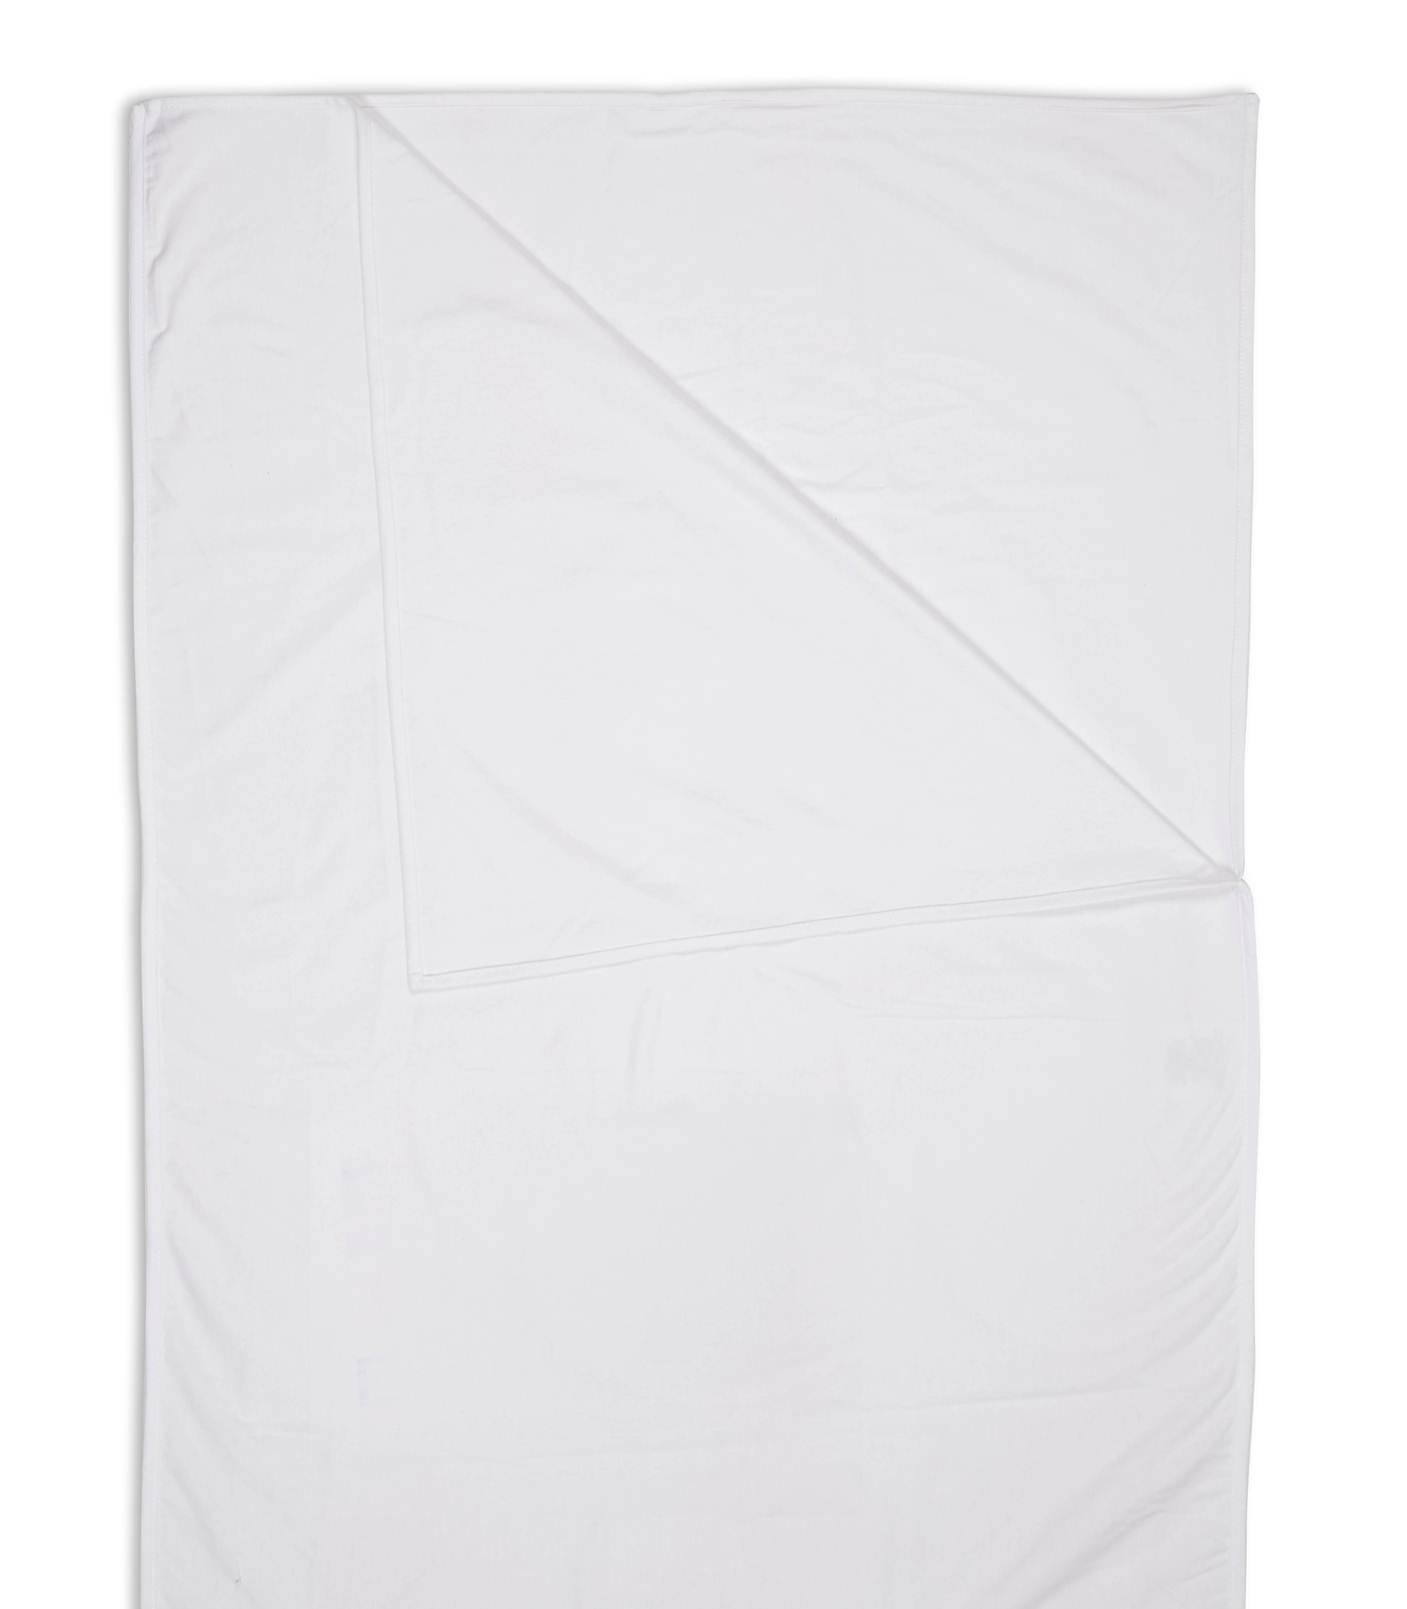 Brolly Sheets Children's Waterproof Sleeping Bag Liner - White by Brolly Sheets